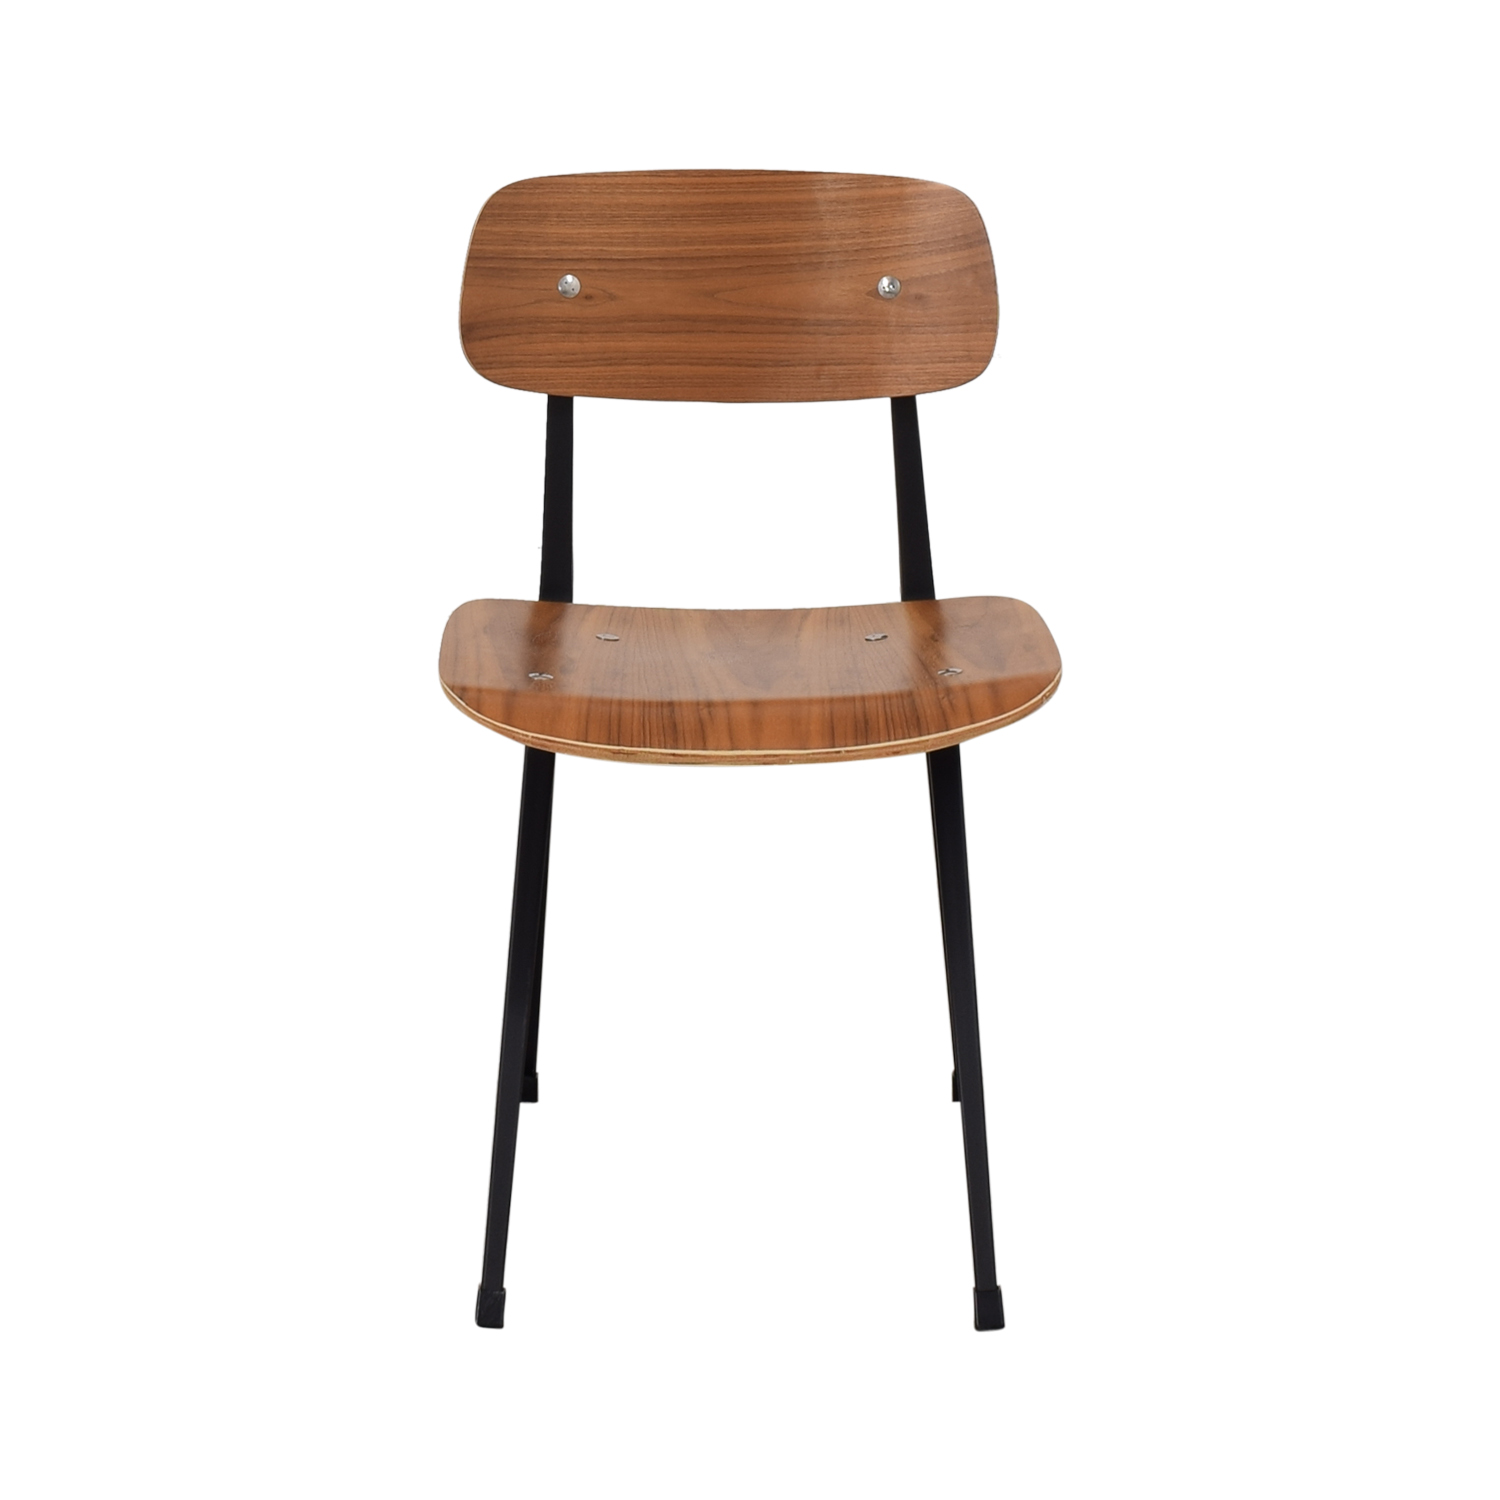 Organic Modernism Organic Modernism Cafe Walnut Dining Chair for sale